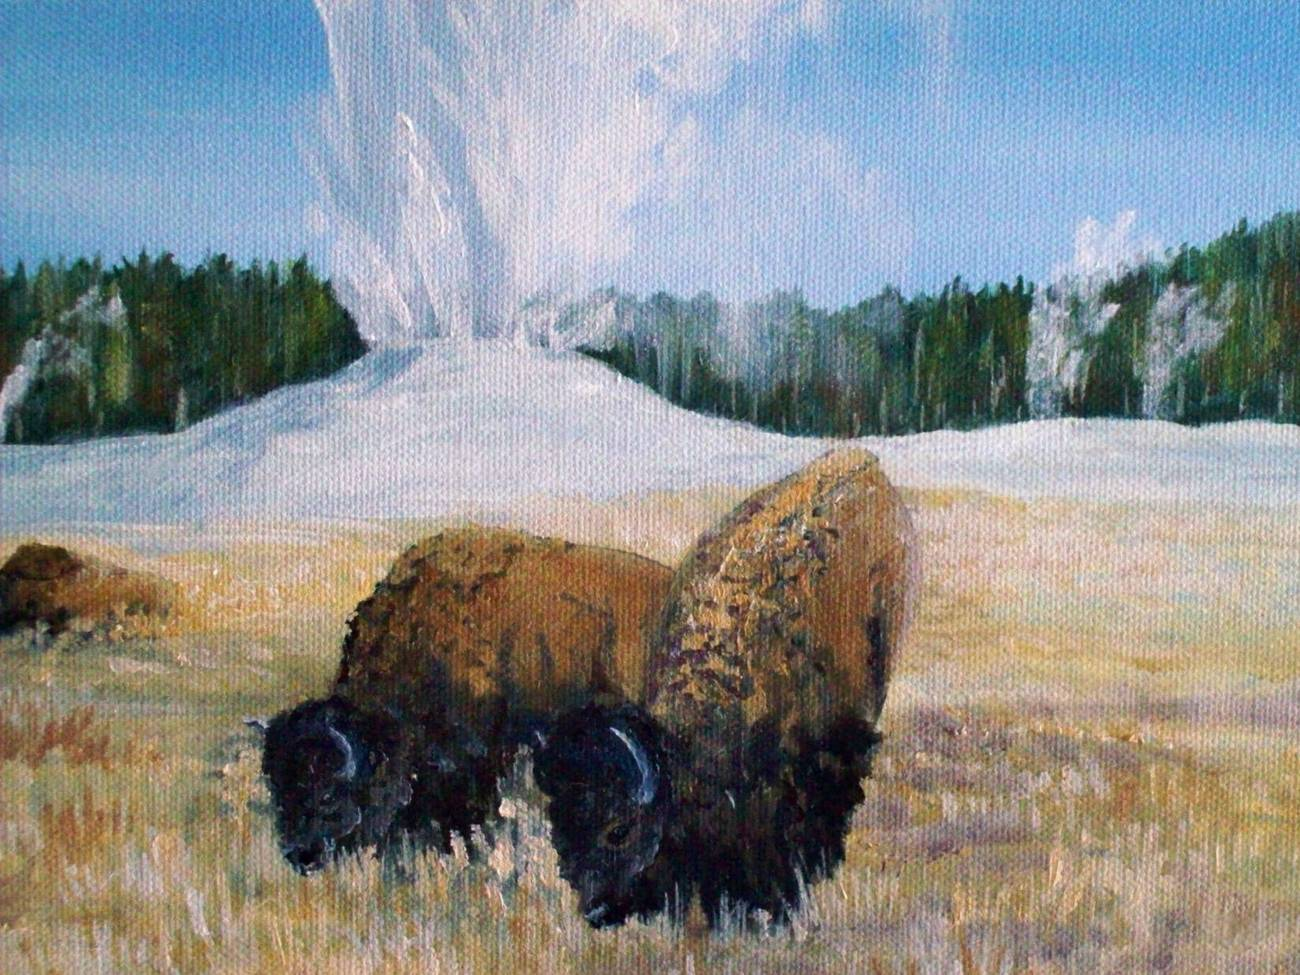 Yellowstone Old Faithful Bison Western Landscape Original Realistic Oil Painting